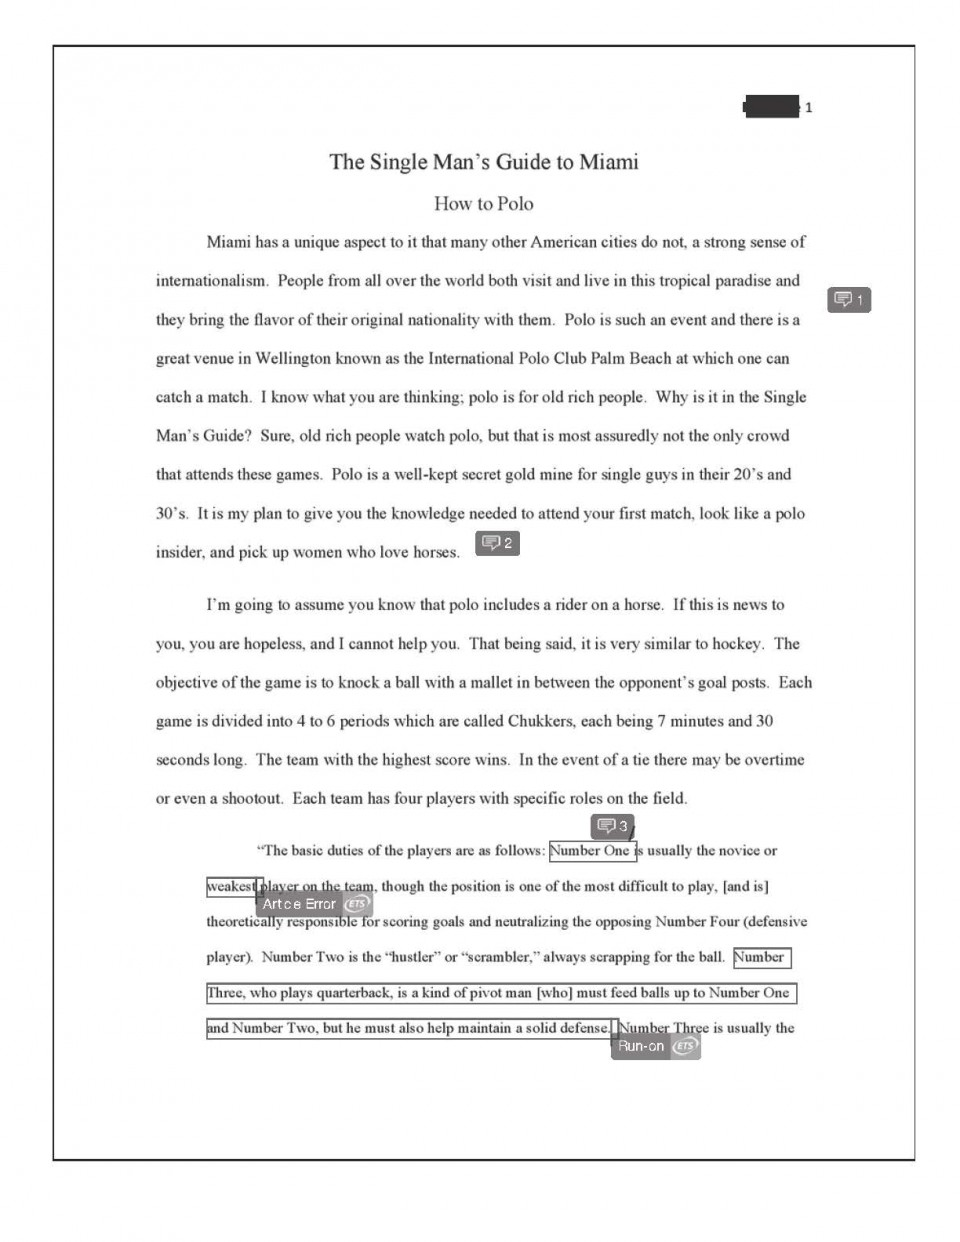 005 Informative Essay Topics Essays Sample Funny Argumentative For Middle School Final How To Polo Redacted P College Students Hilarious Good Remarkable Fourth Grade Graders 960